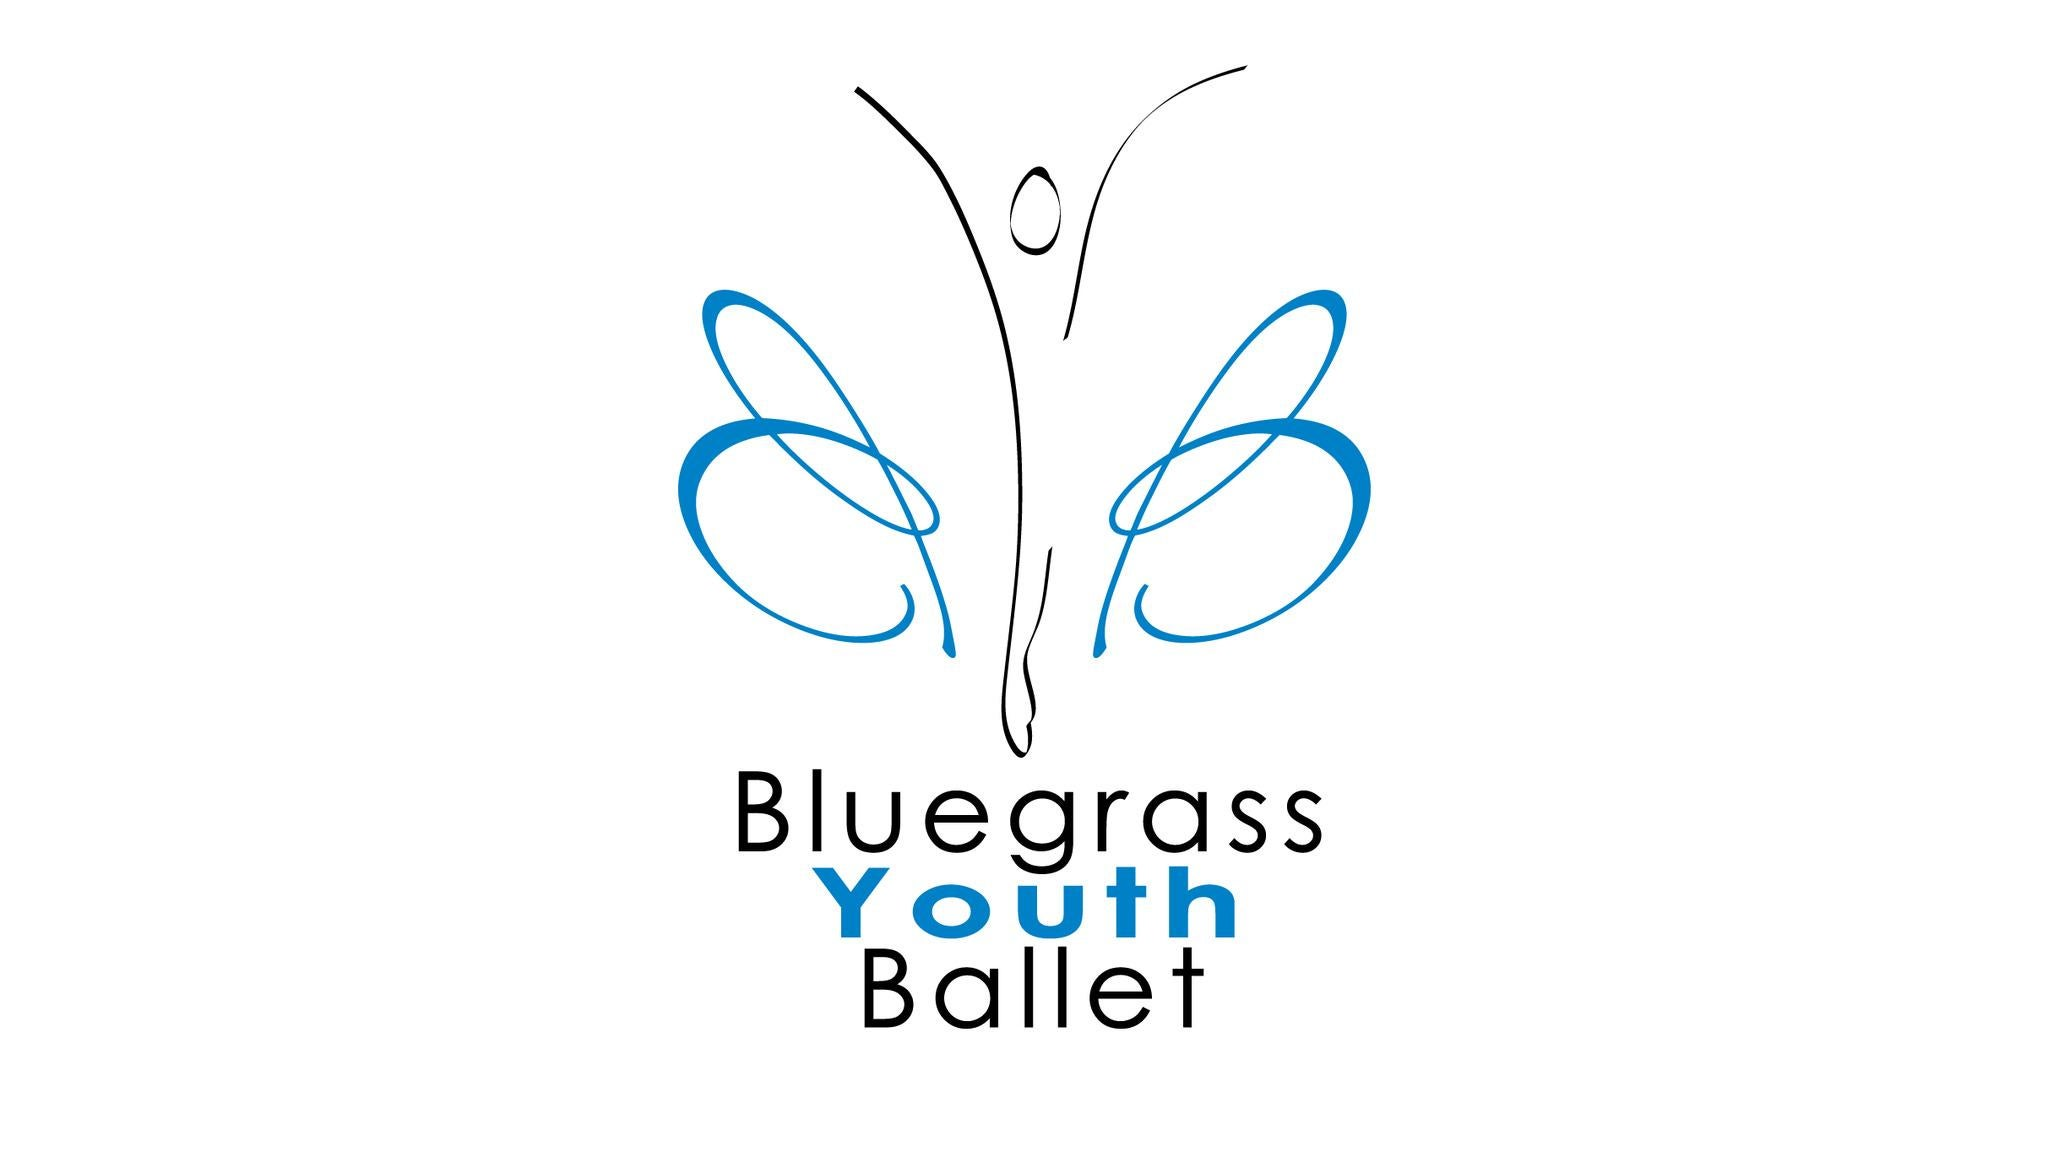 Bluegrass Youth Ballet